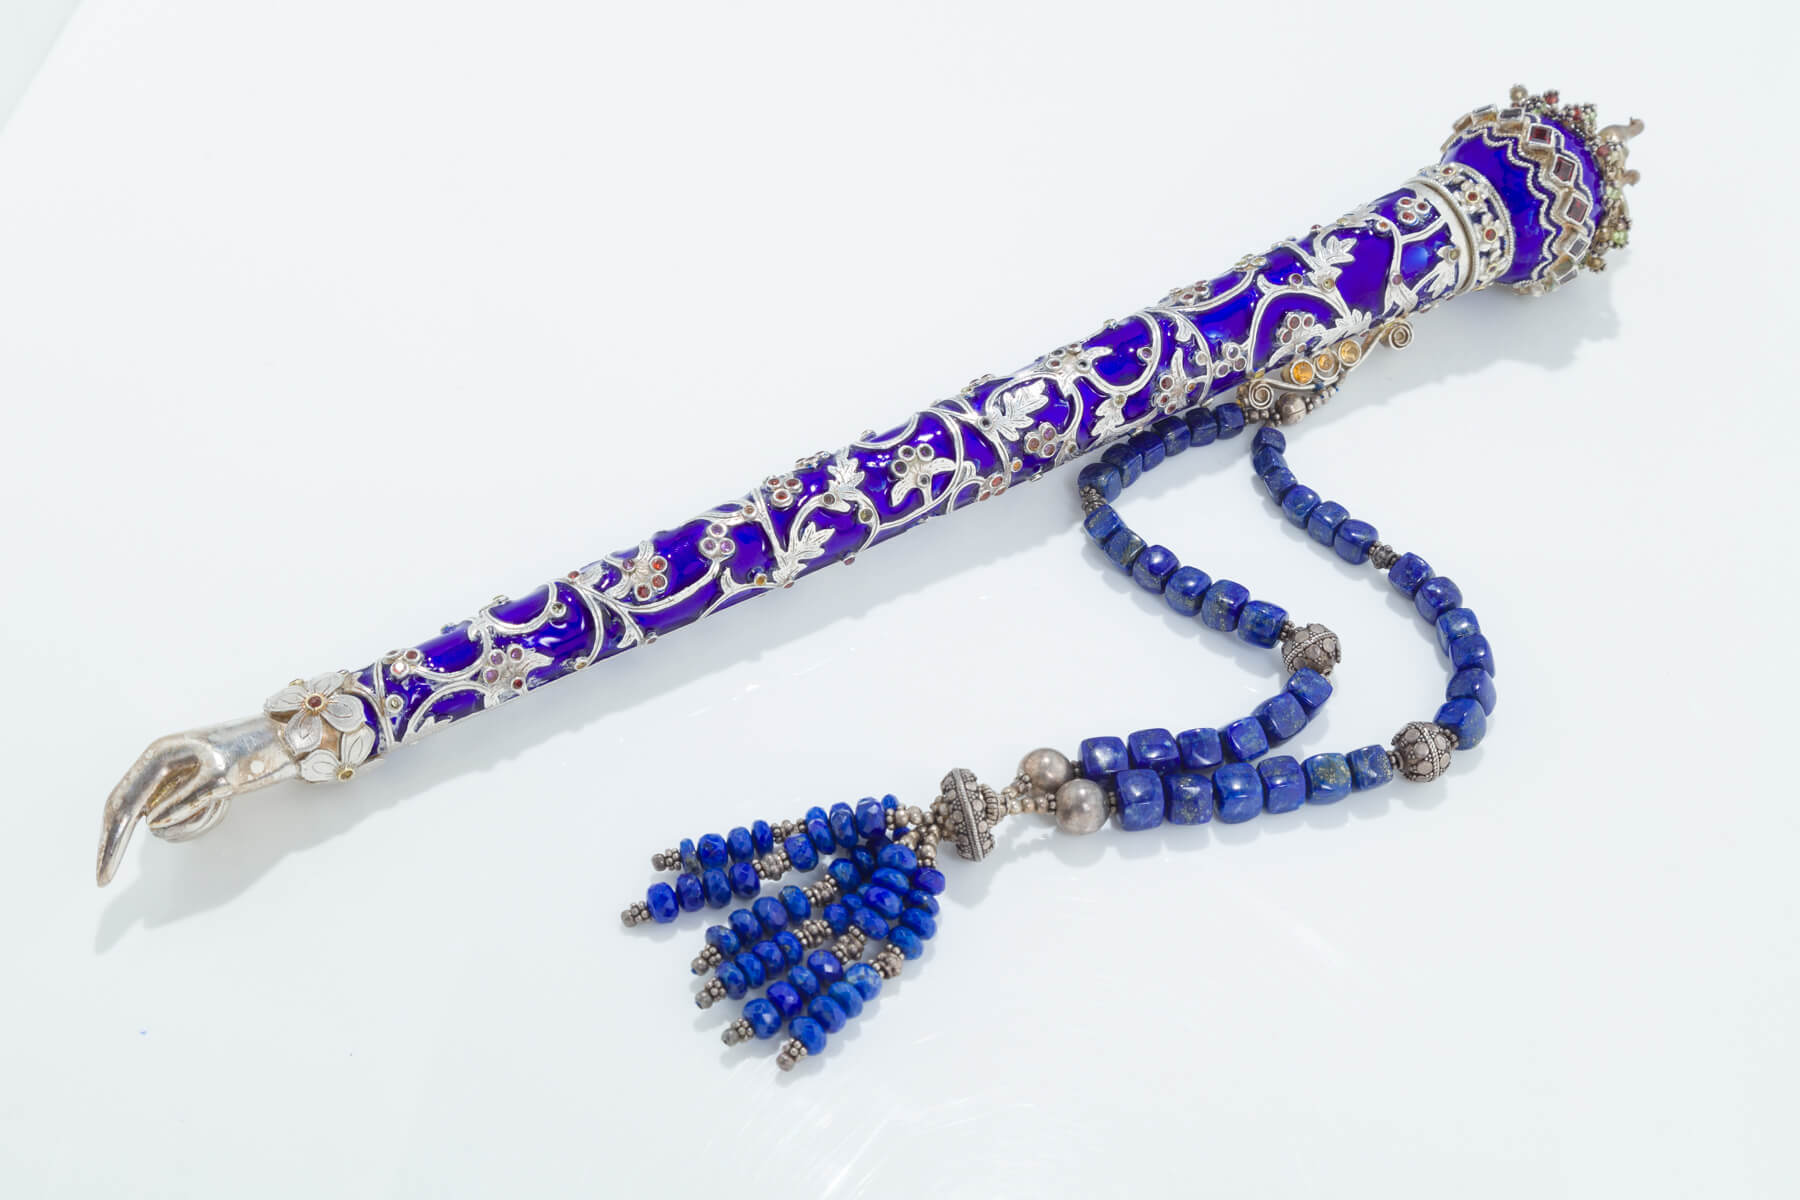 141. A Silver and Enamel Torah Pointer by Dekel Aviv